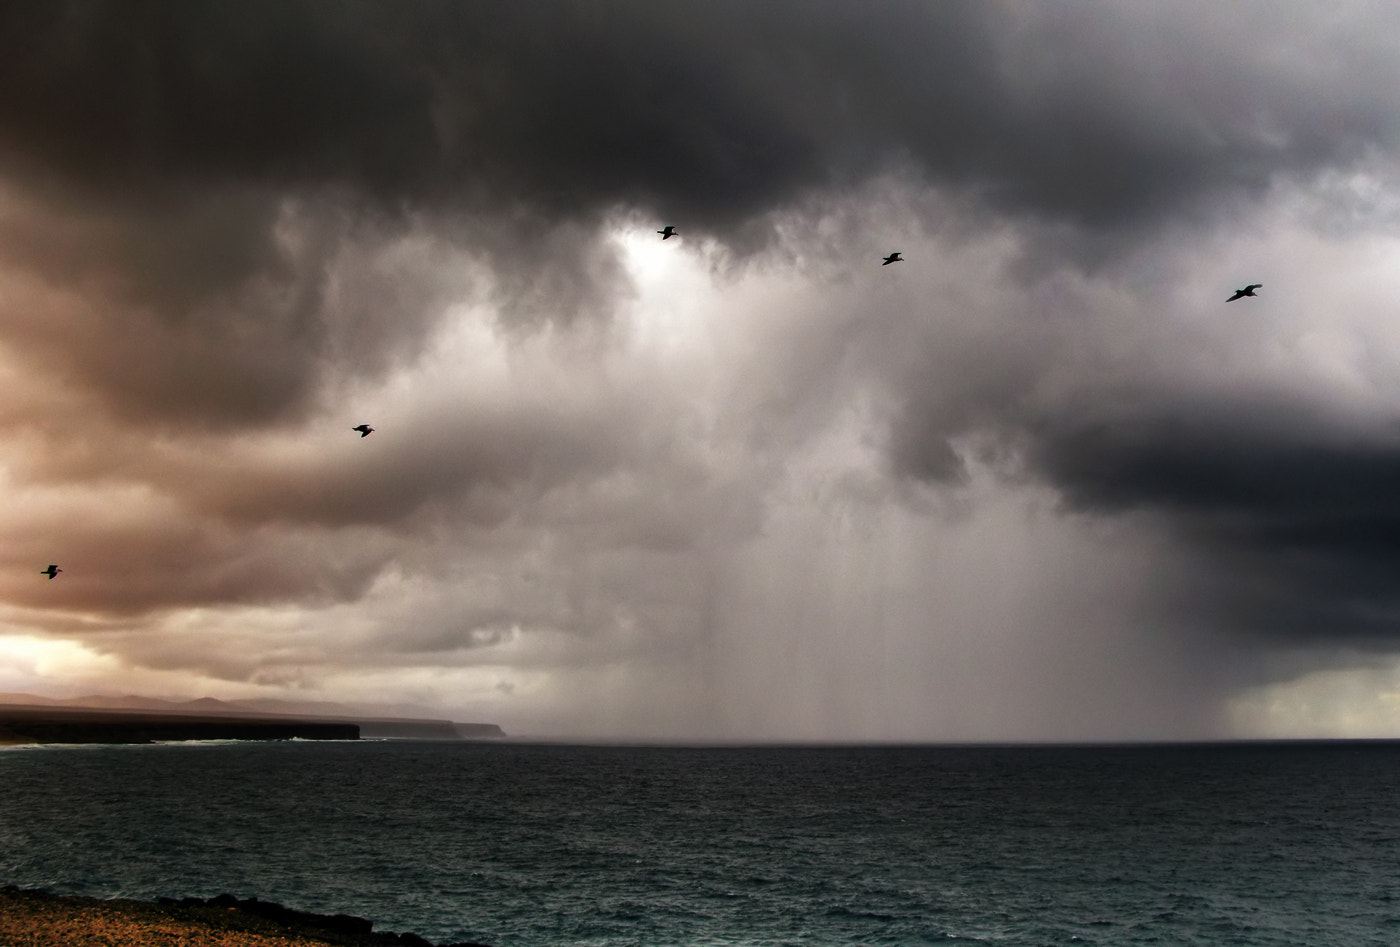 Photograph Storm coming. by Pedro López Batista on 500px